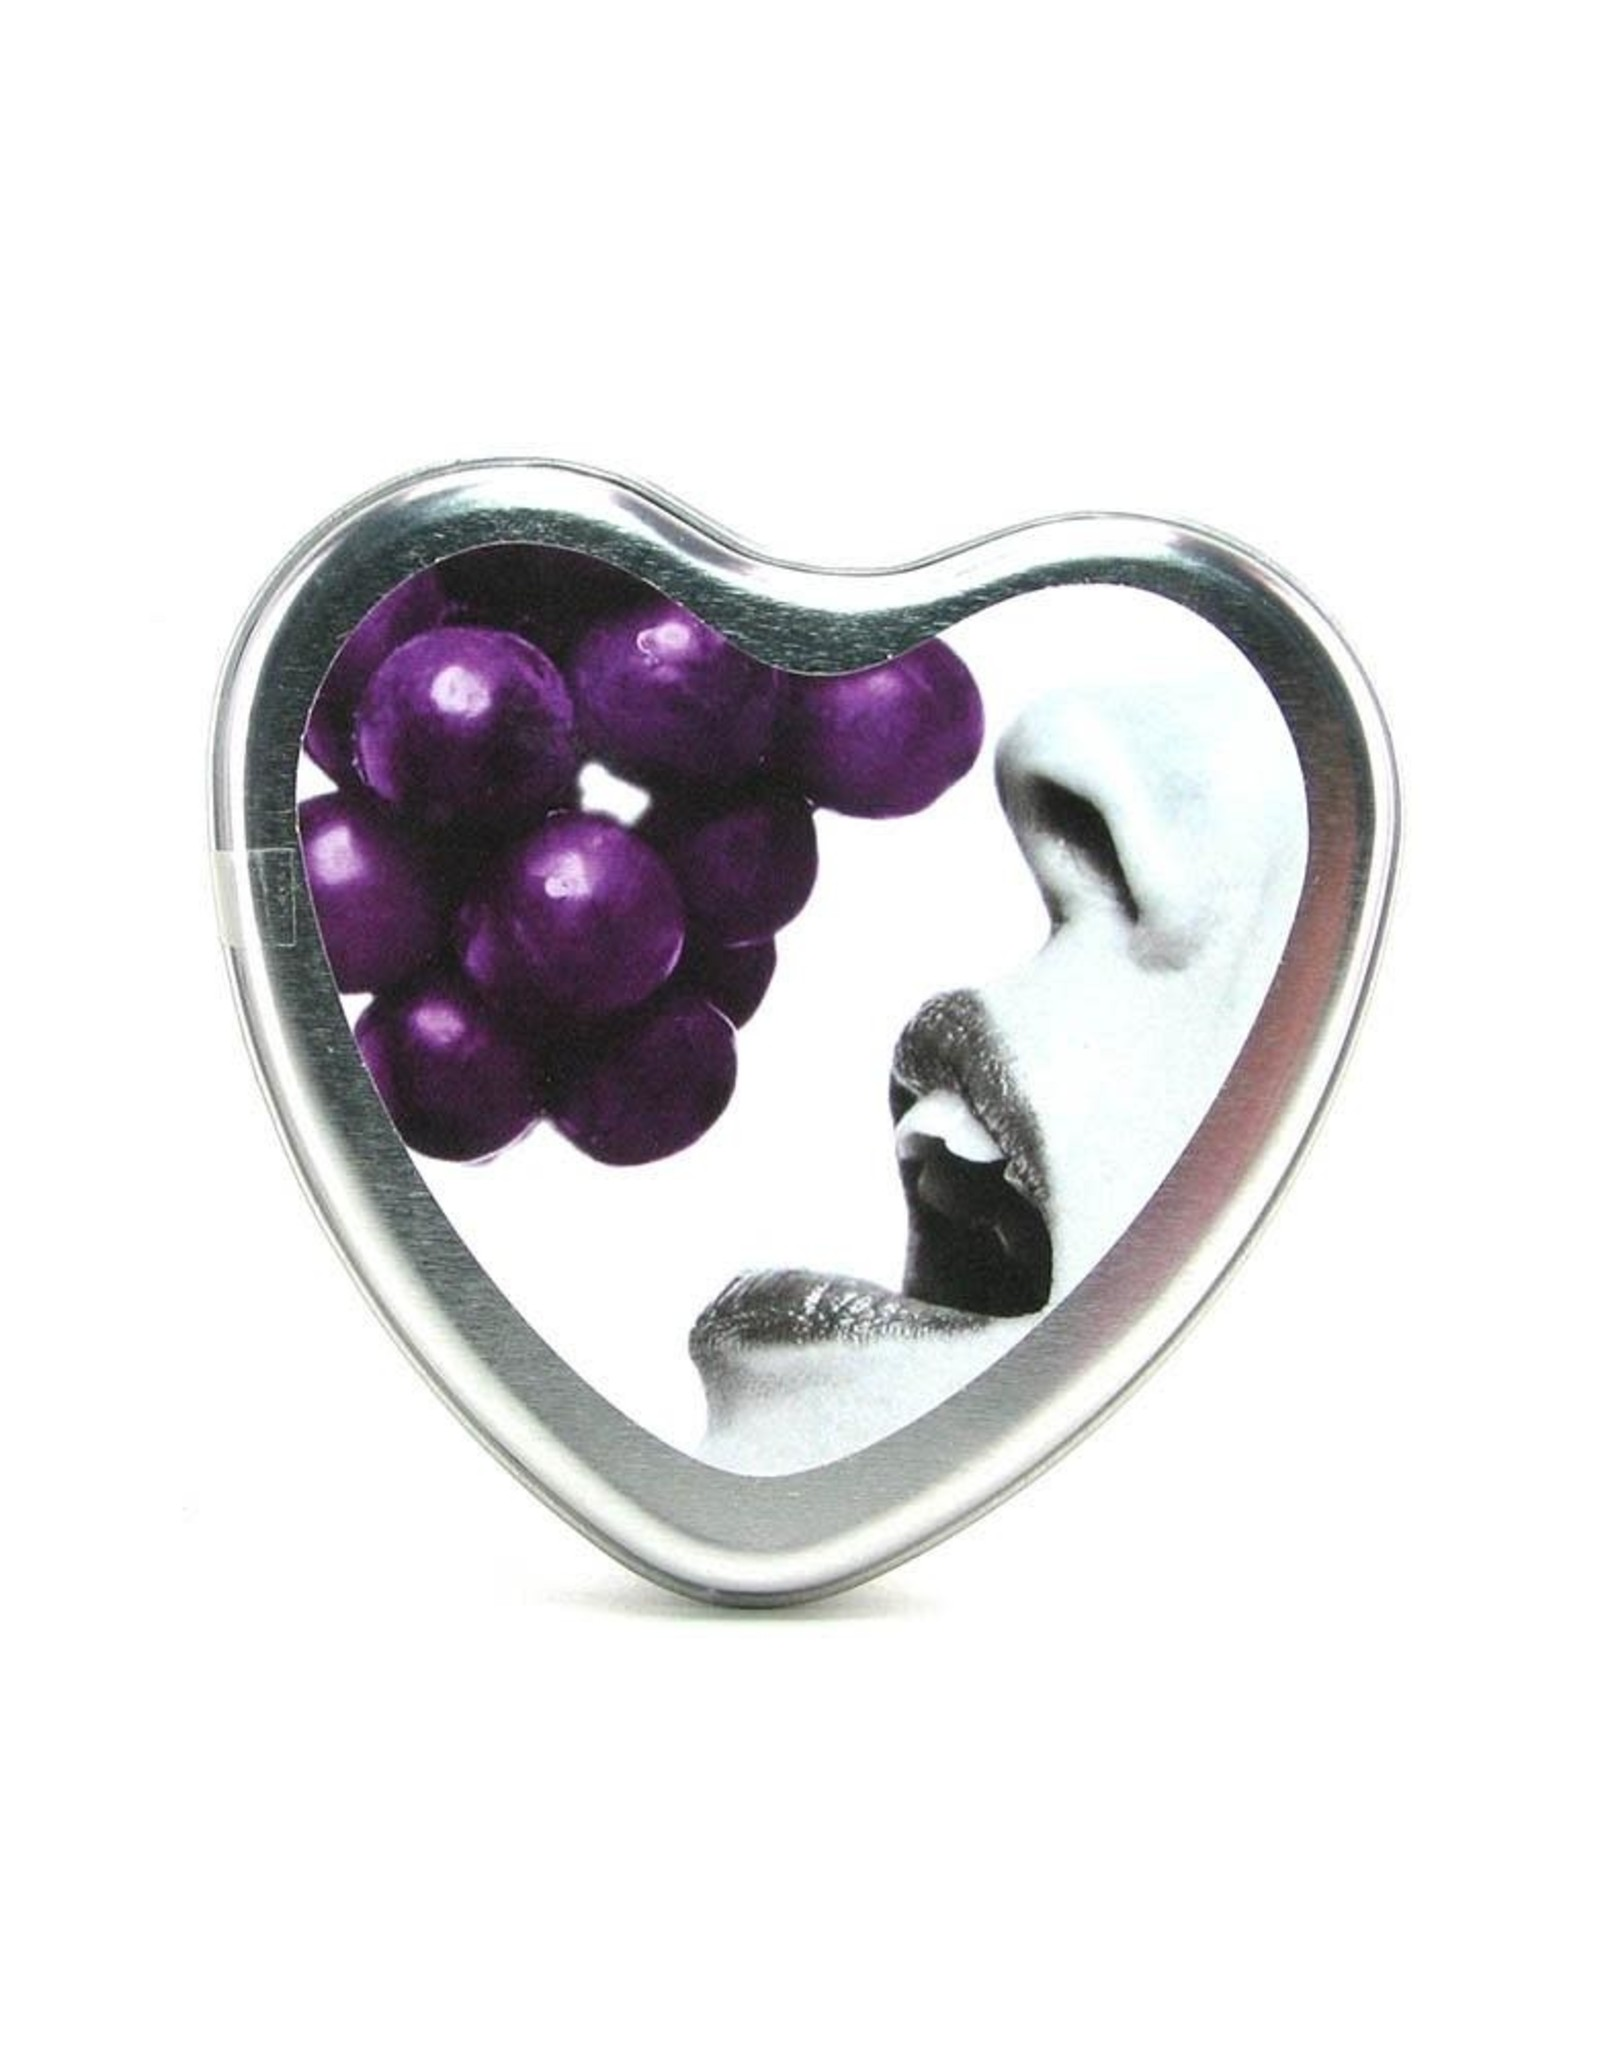 EARTHLY BODIES - 3-IN-1 MASSAGE OIL CANDLE - GRAPE